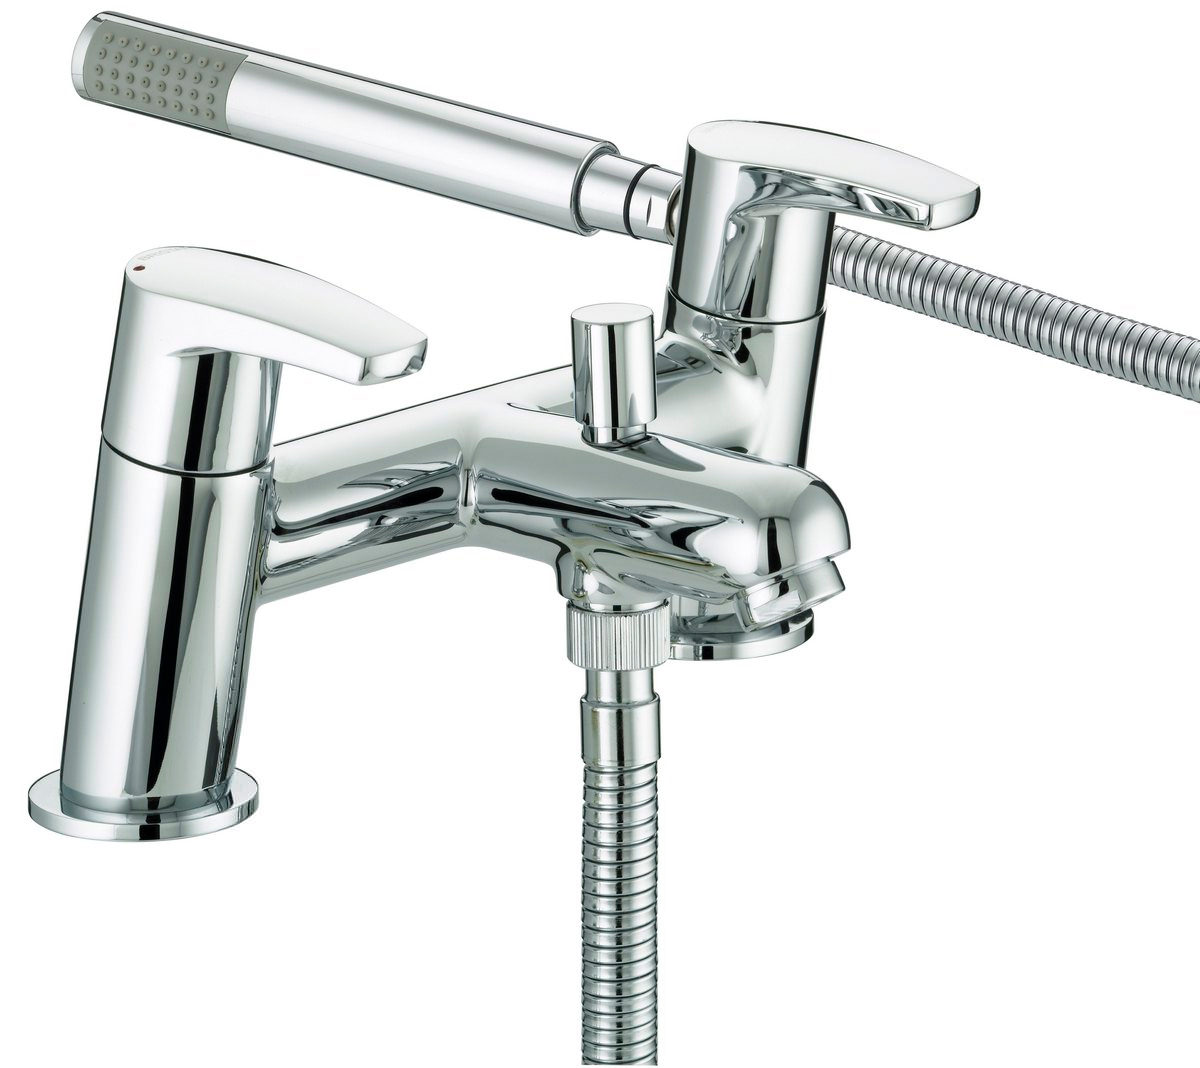 orta bath shower mixer tap or bsm c bristan orta bath shower mixer tap or bsm c